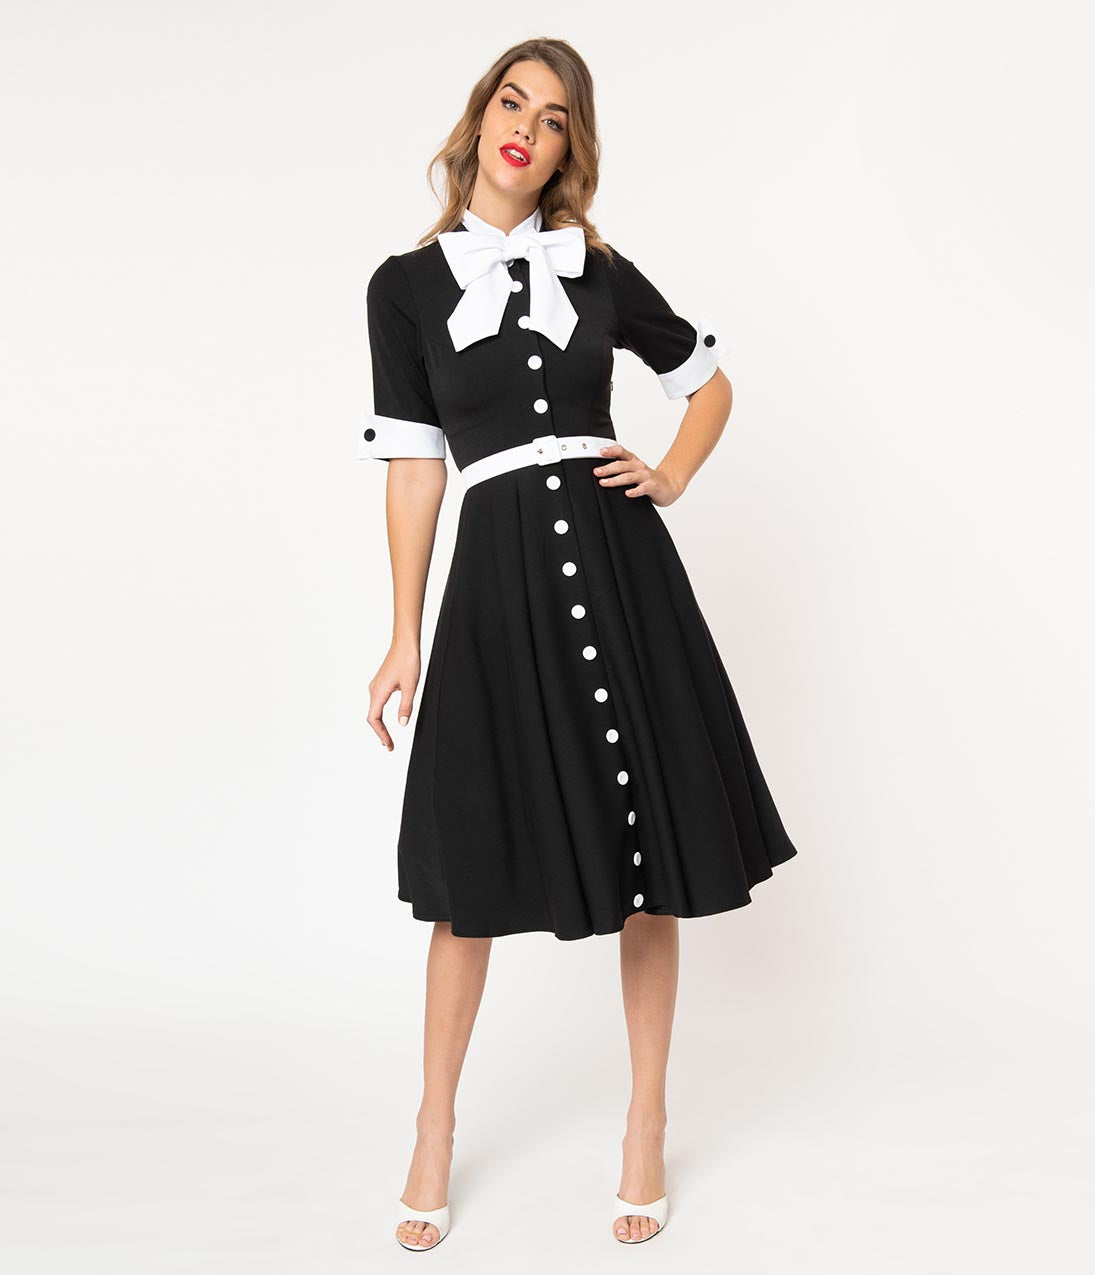 Vintage Tea Dresses, Floral Tea Dresses, Tea Length Dresses Miss Candyfloss 1940S Black  White Button Bow Edelie Tea Dress $138.00 AT vintagedancer.com